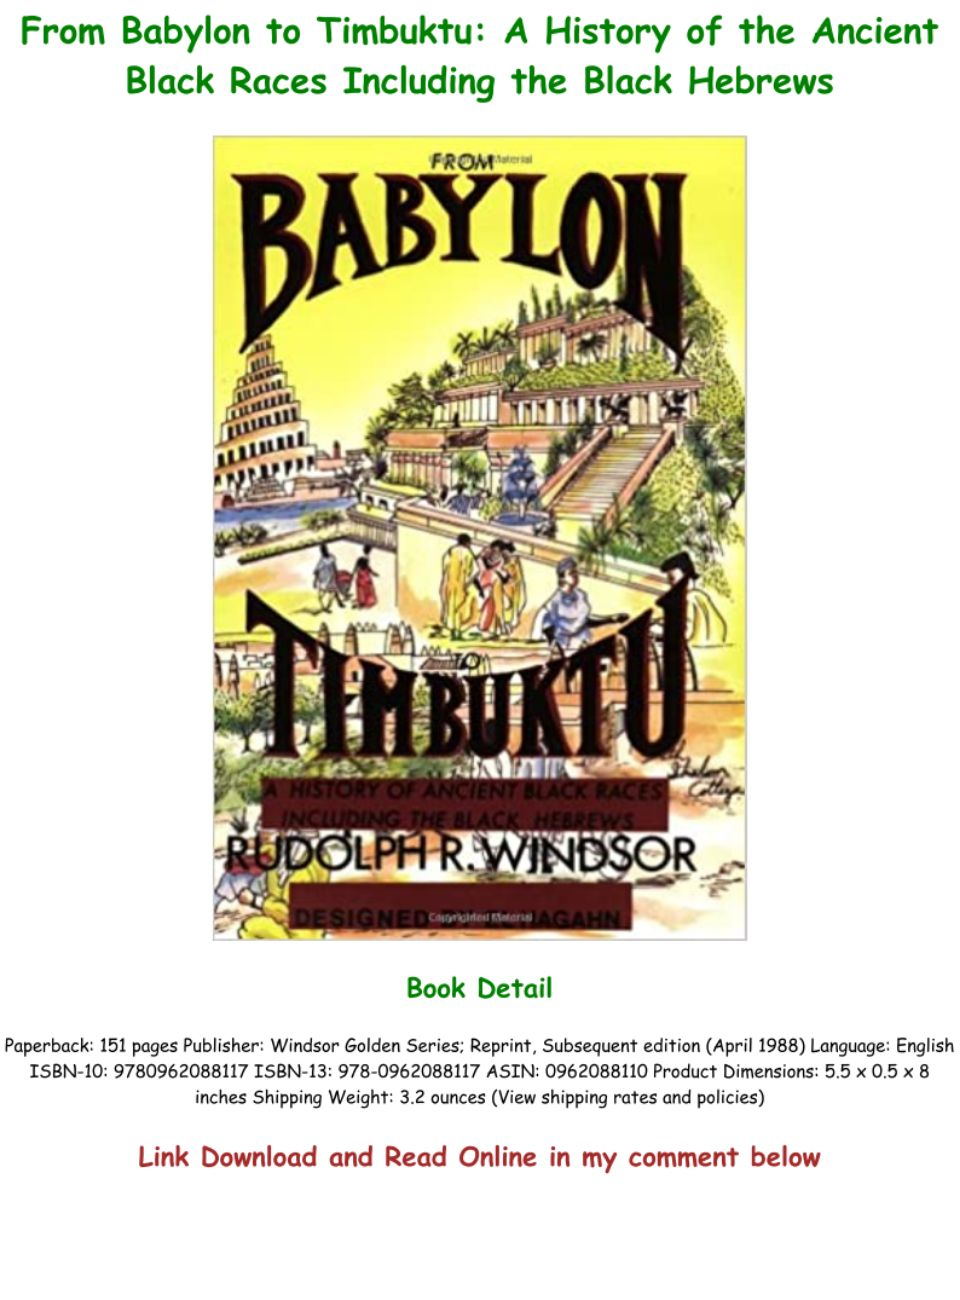 From Babylon To Timbuktu Pdf Download